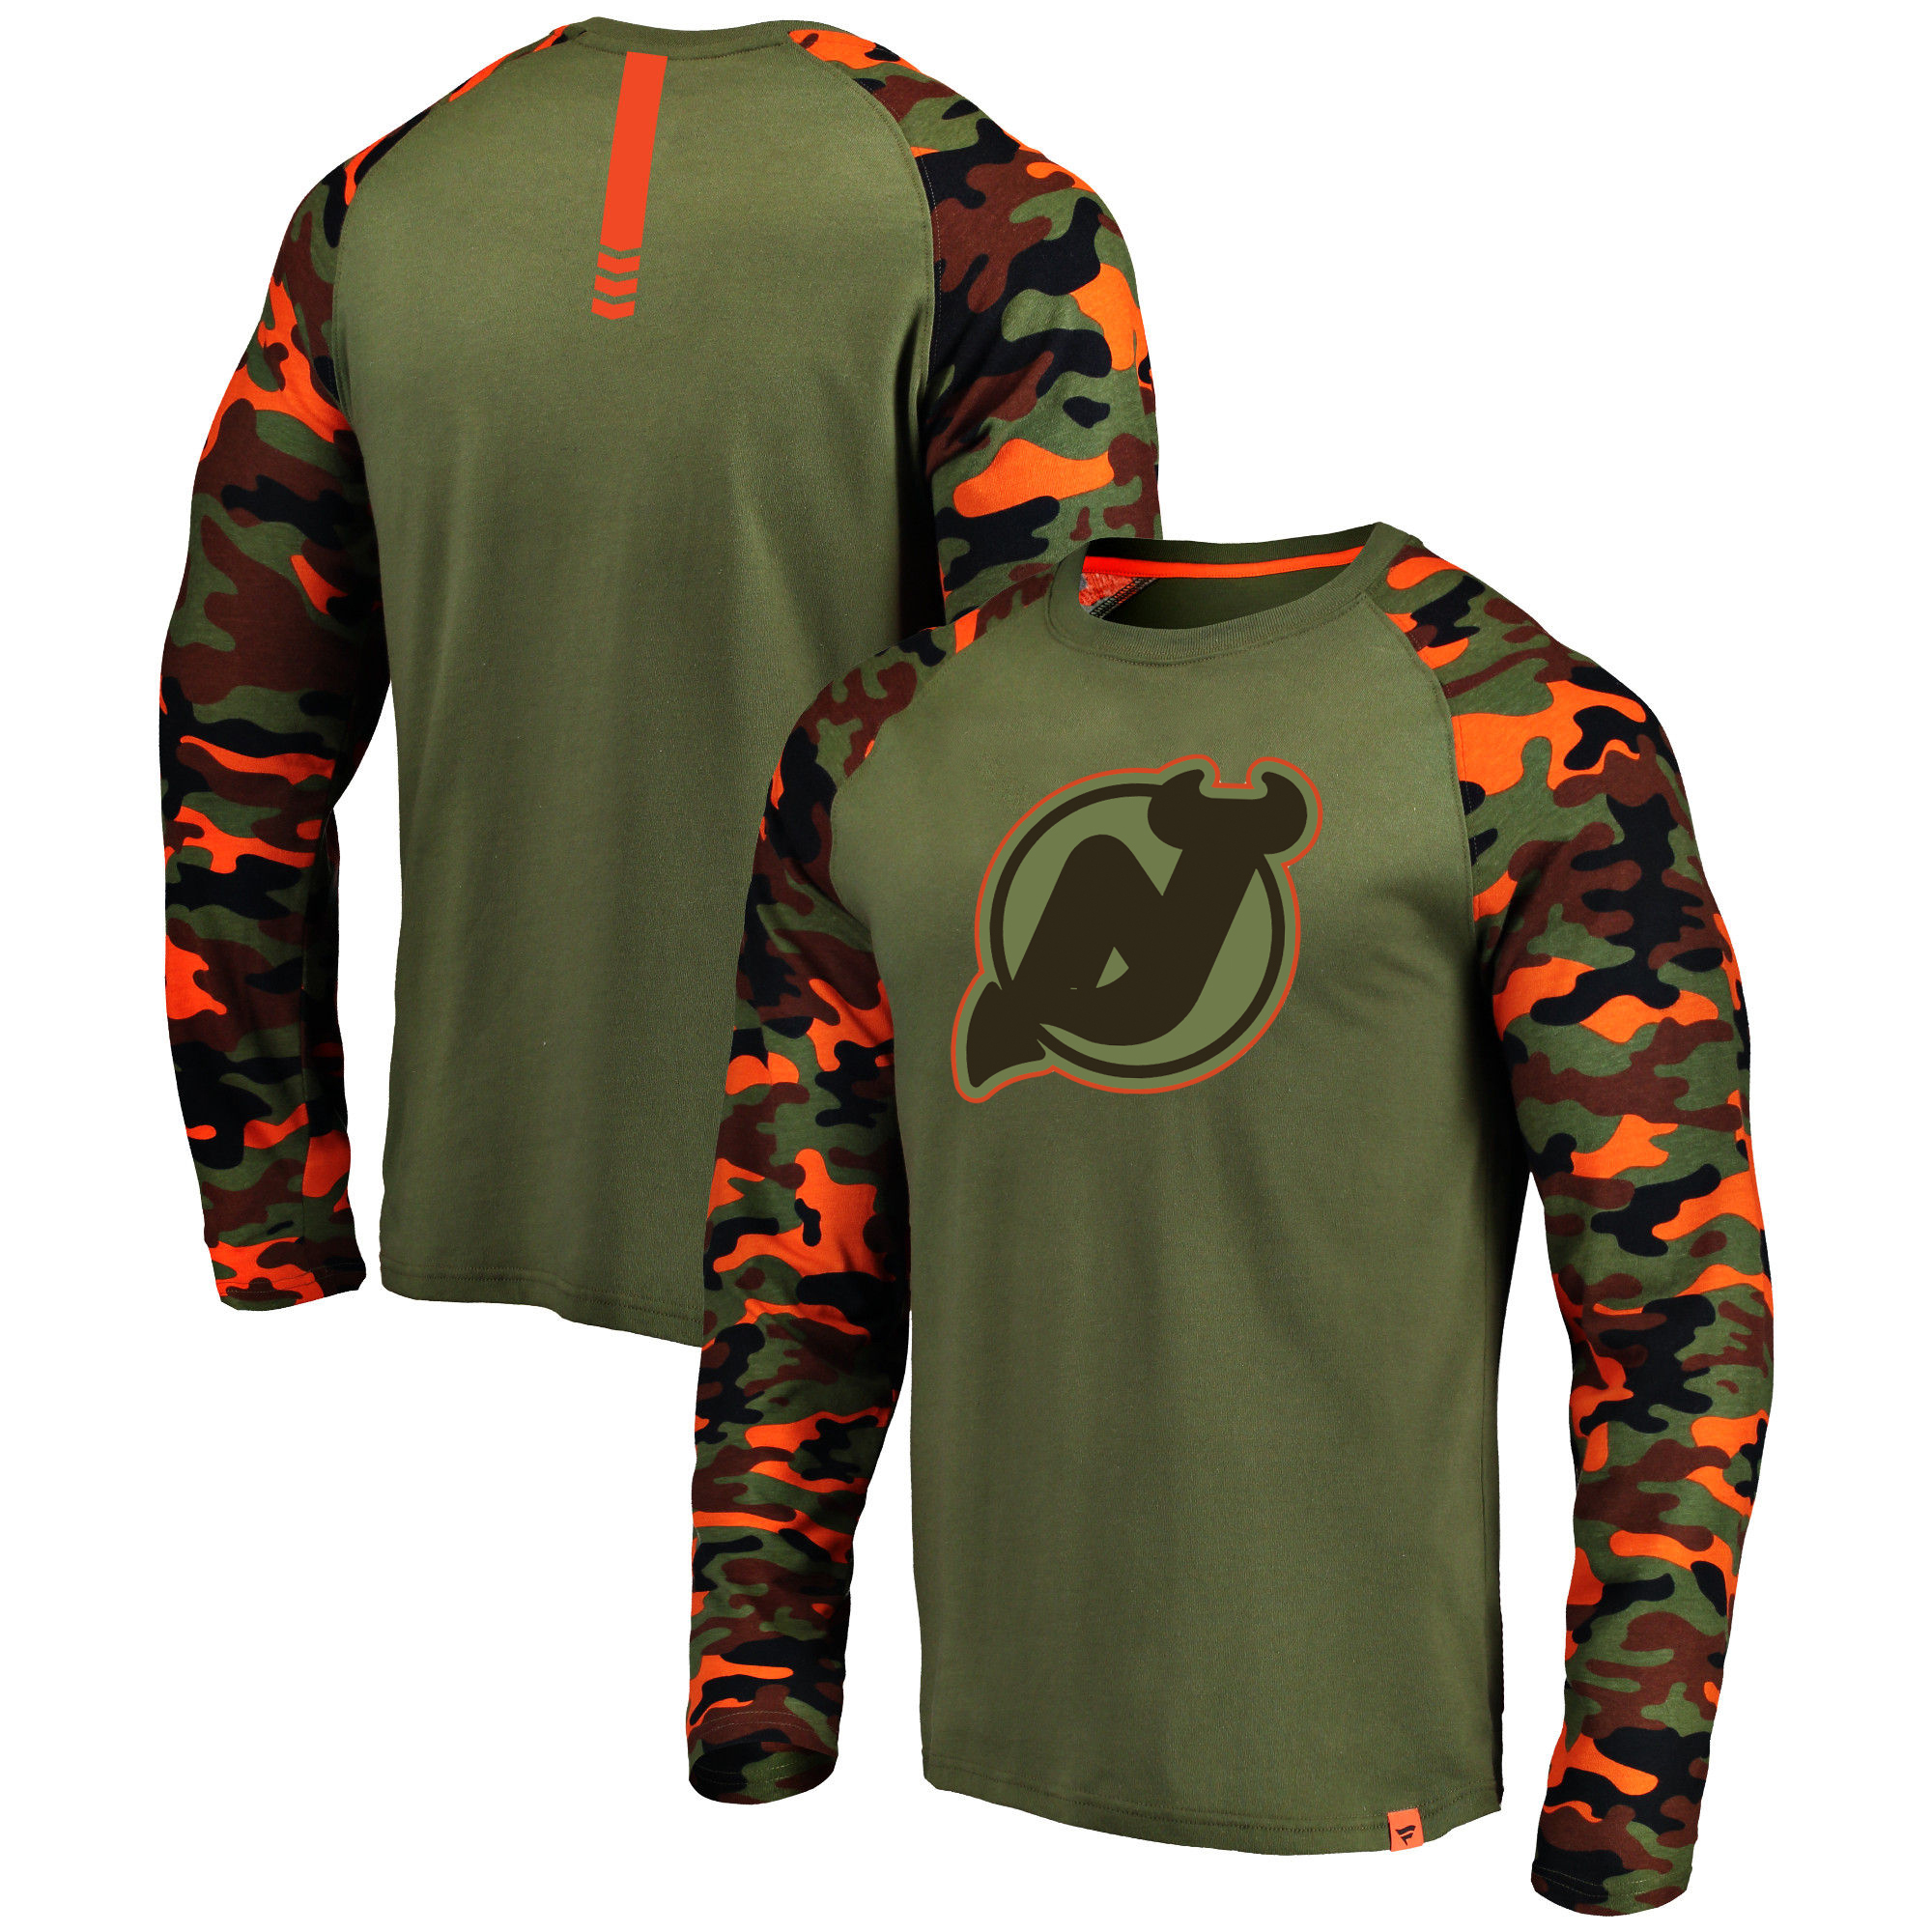 New Jersey Devils Fanatics Branded Olive/Camo Recon Long Sleeve Raglan T-Shirt